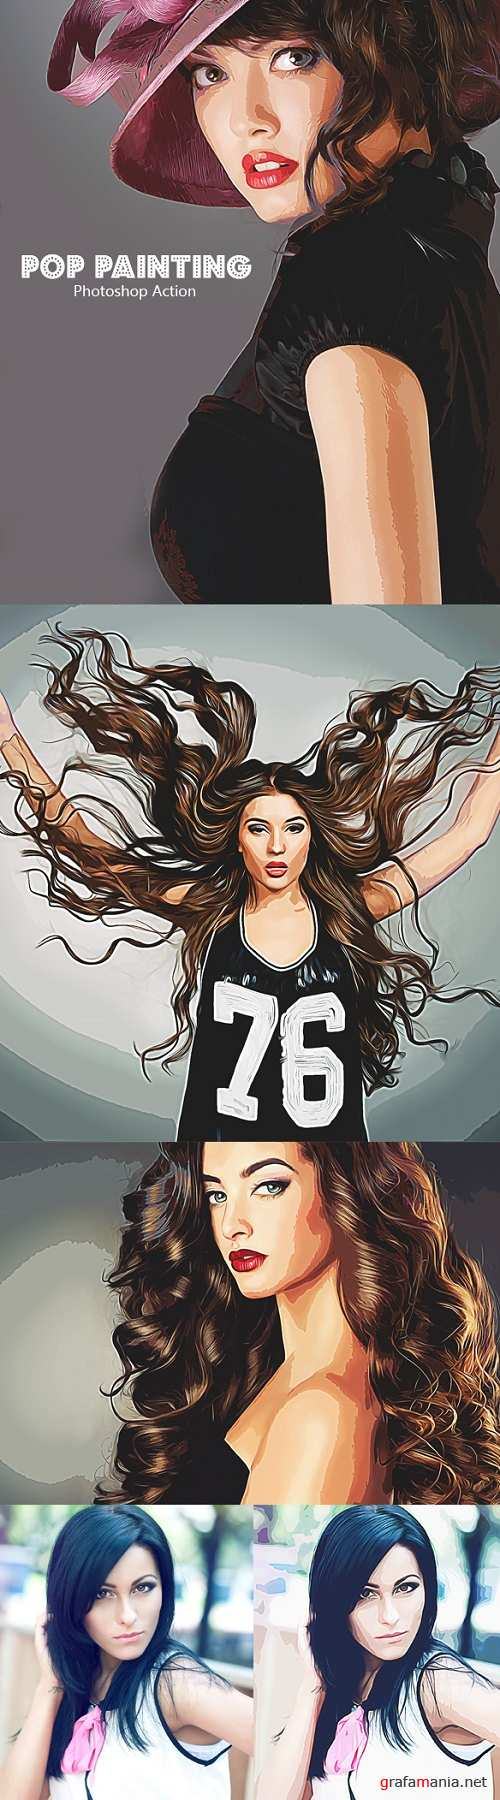 Pop Painting - Photoshop Action 20658529